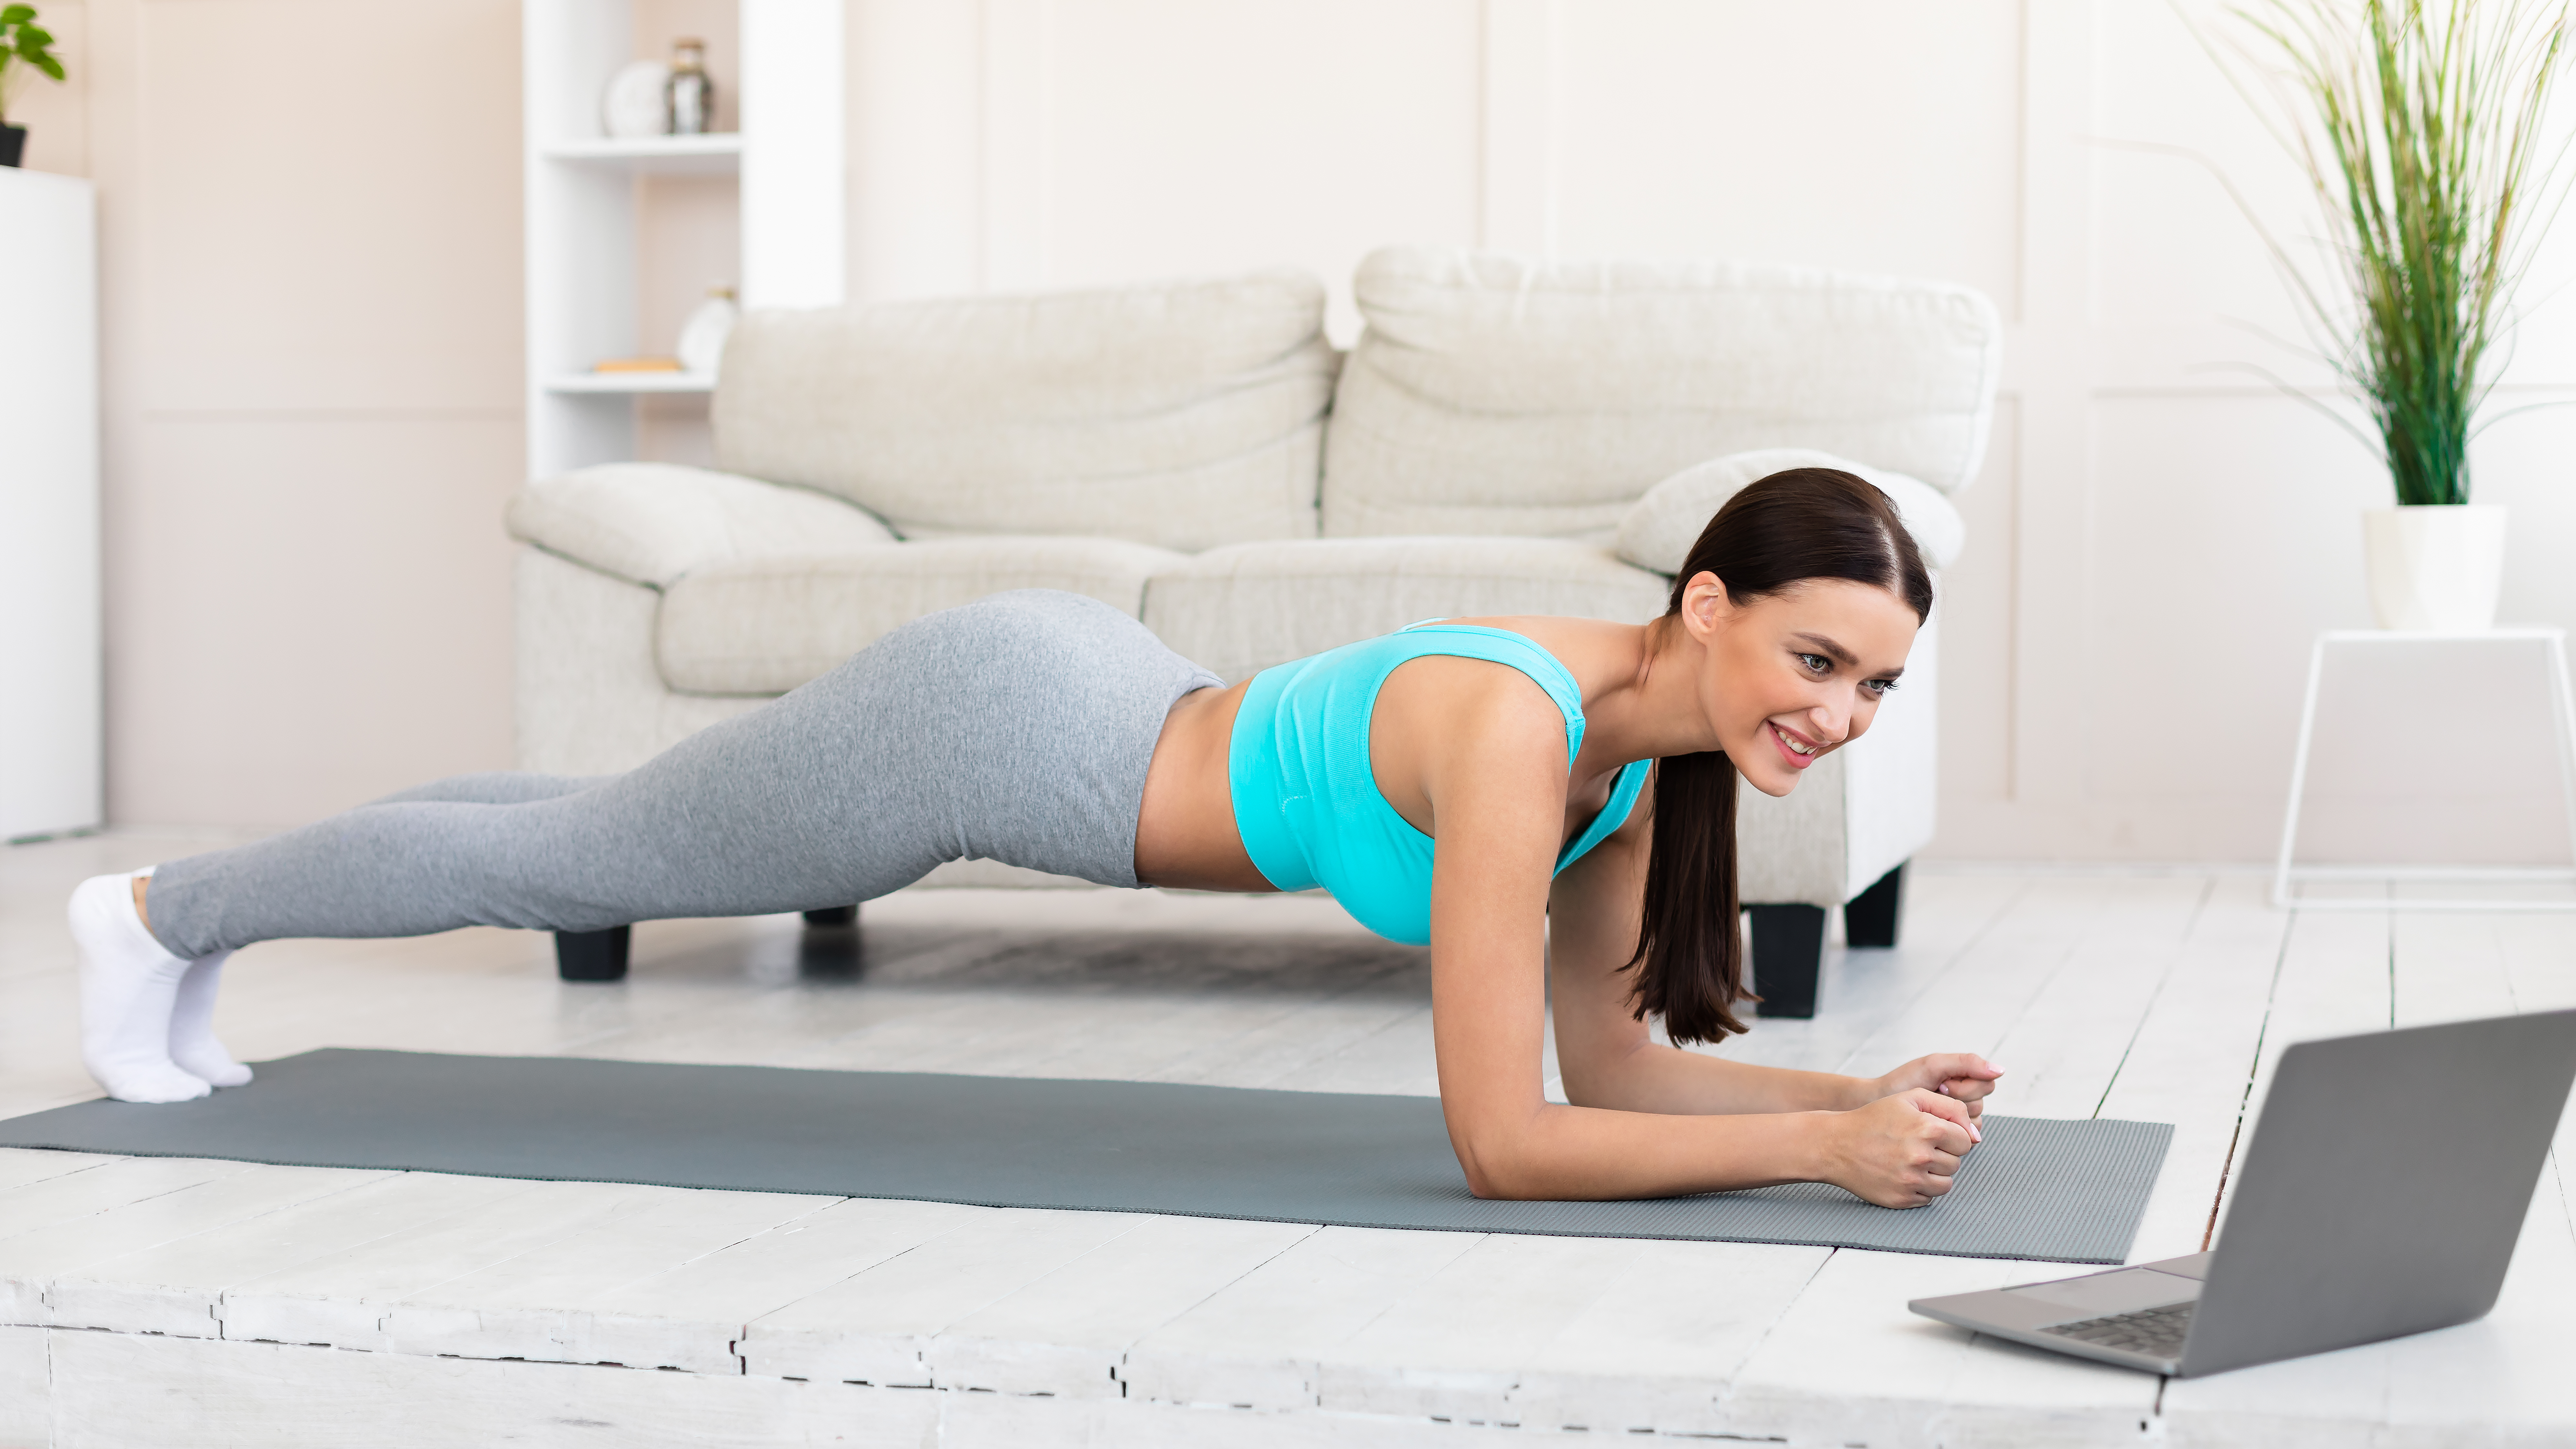 young-woman-at-laptop-exercising-doing-plank-durin-QKAWFD8